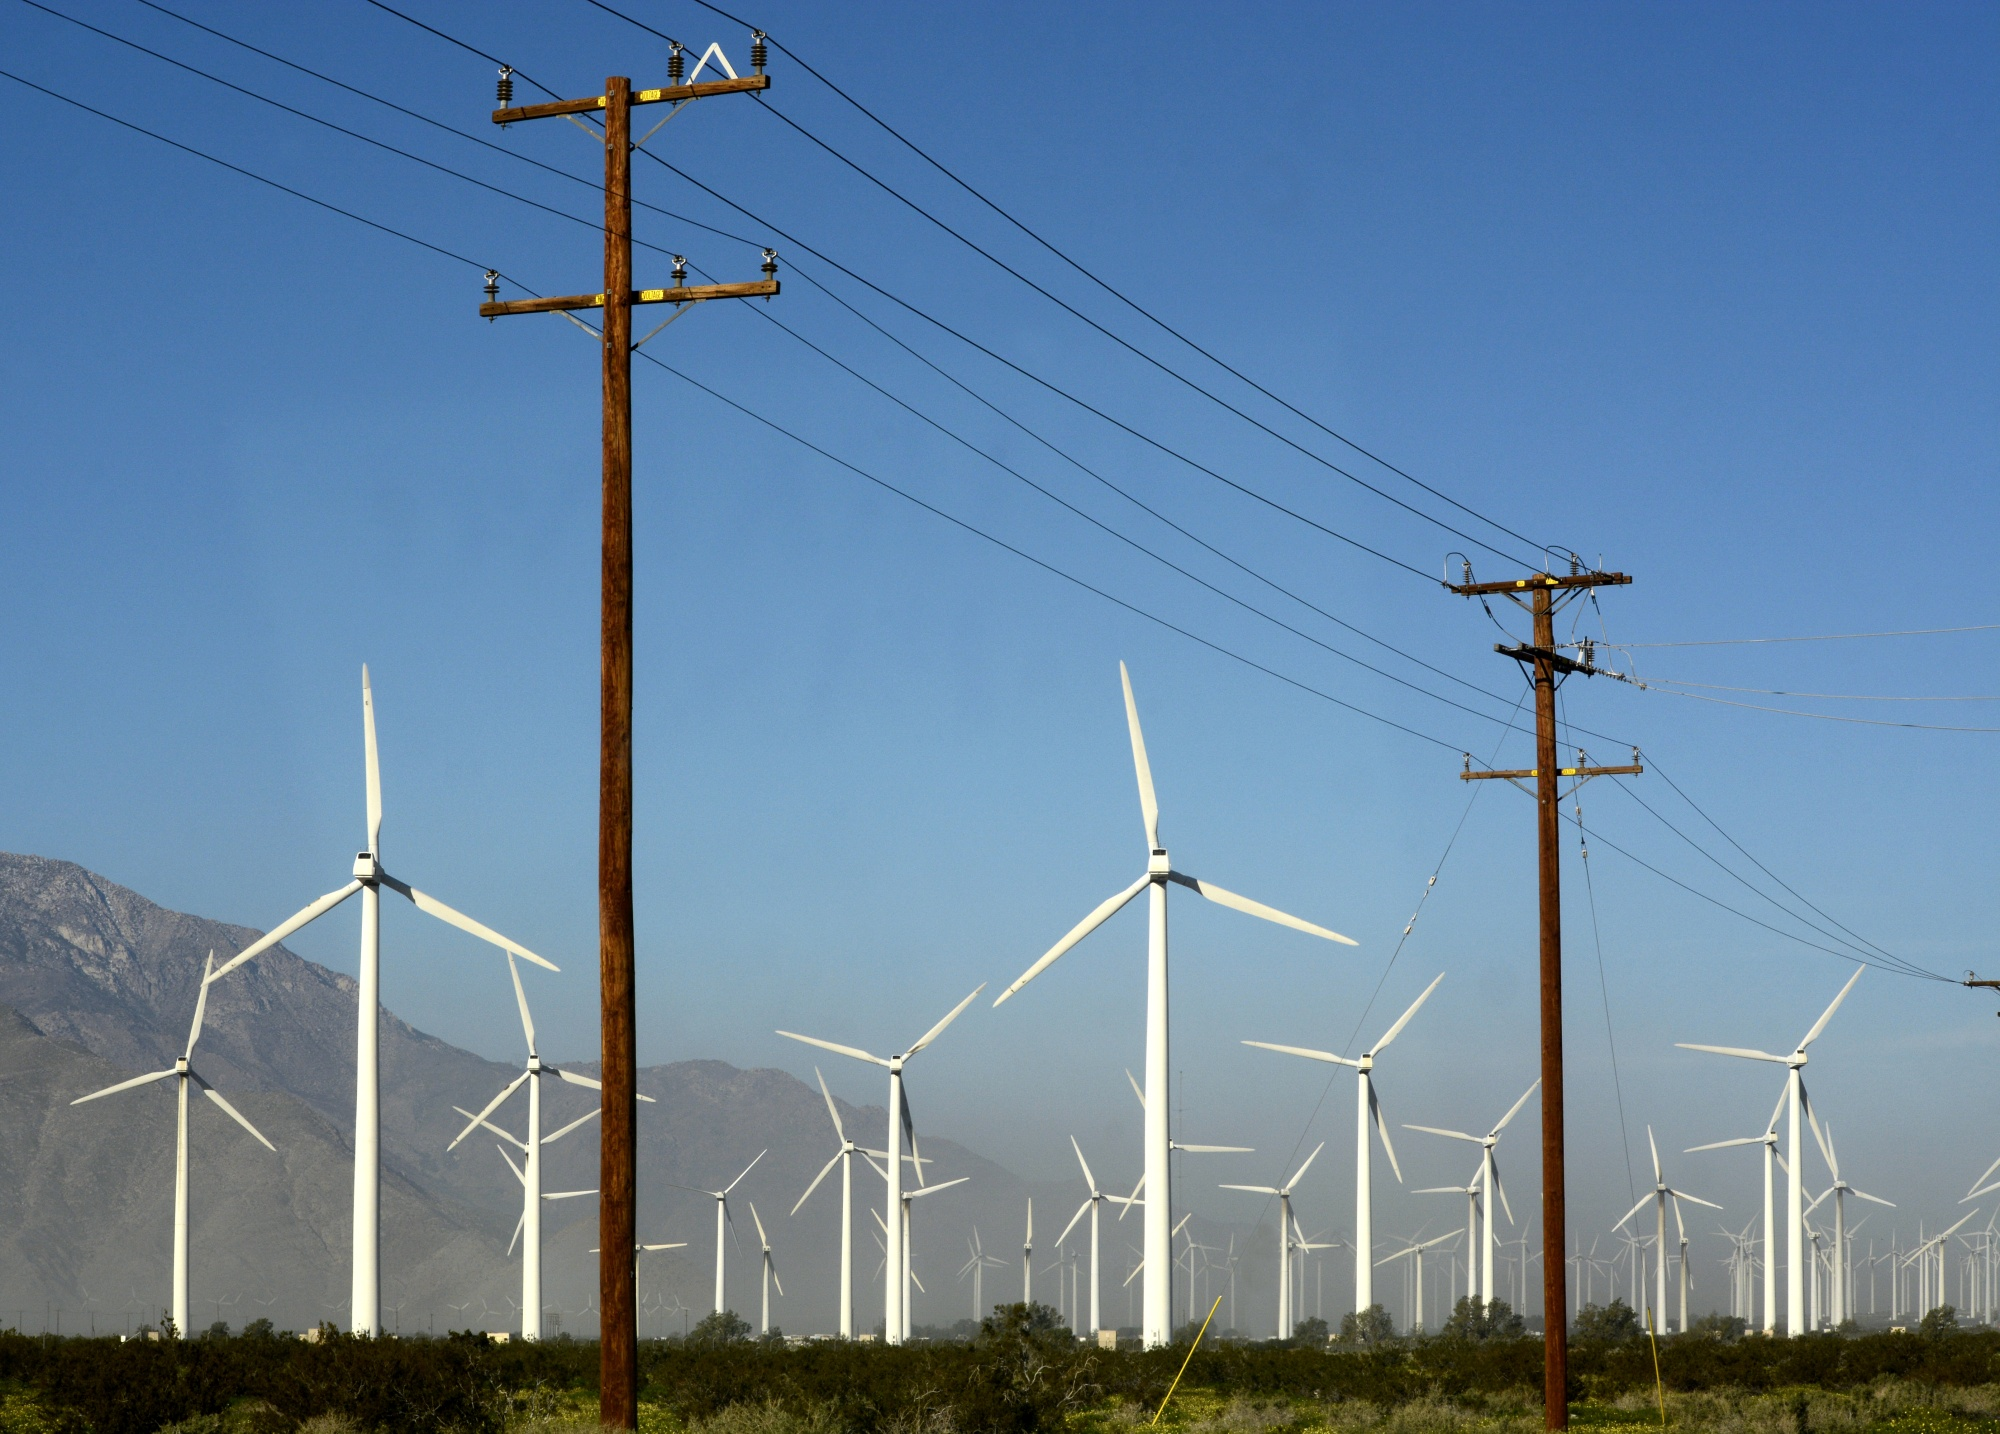 Wind turbines generate electricity near power poles and transmission lines at the San Gorgonio Pass Wind Farm near Palm Springs, California.